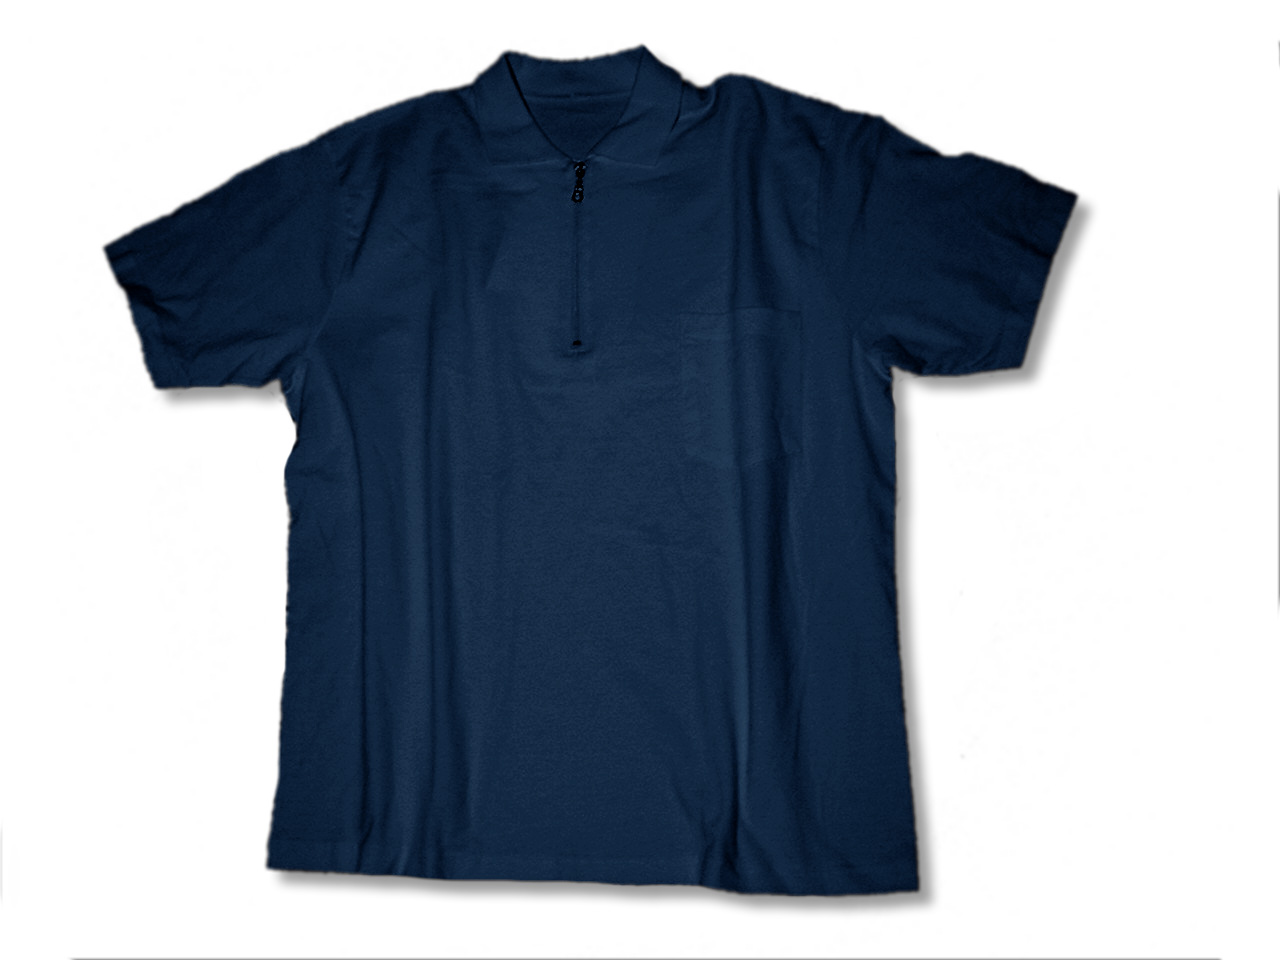 Oxid eshop 4 polo t shirt with chest pocket navyblue for Polo t shirts with pockets